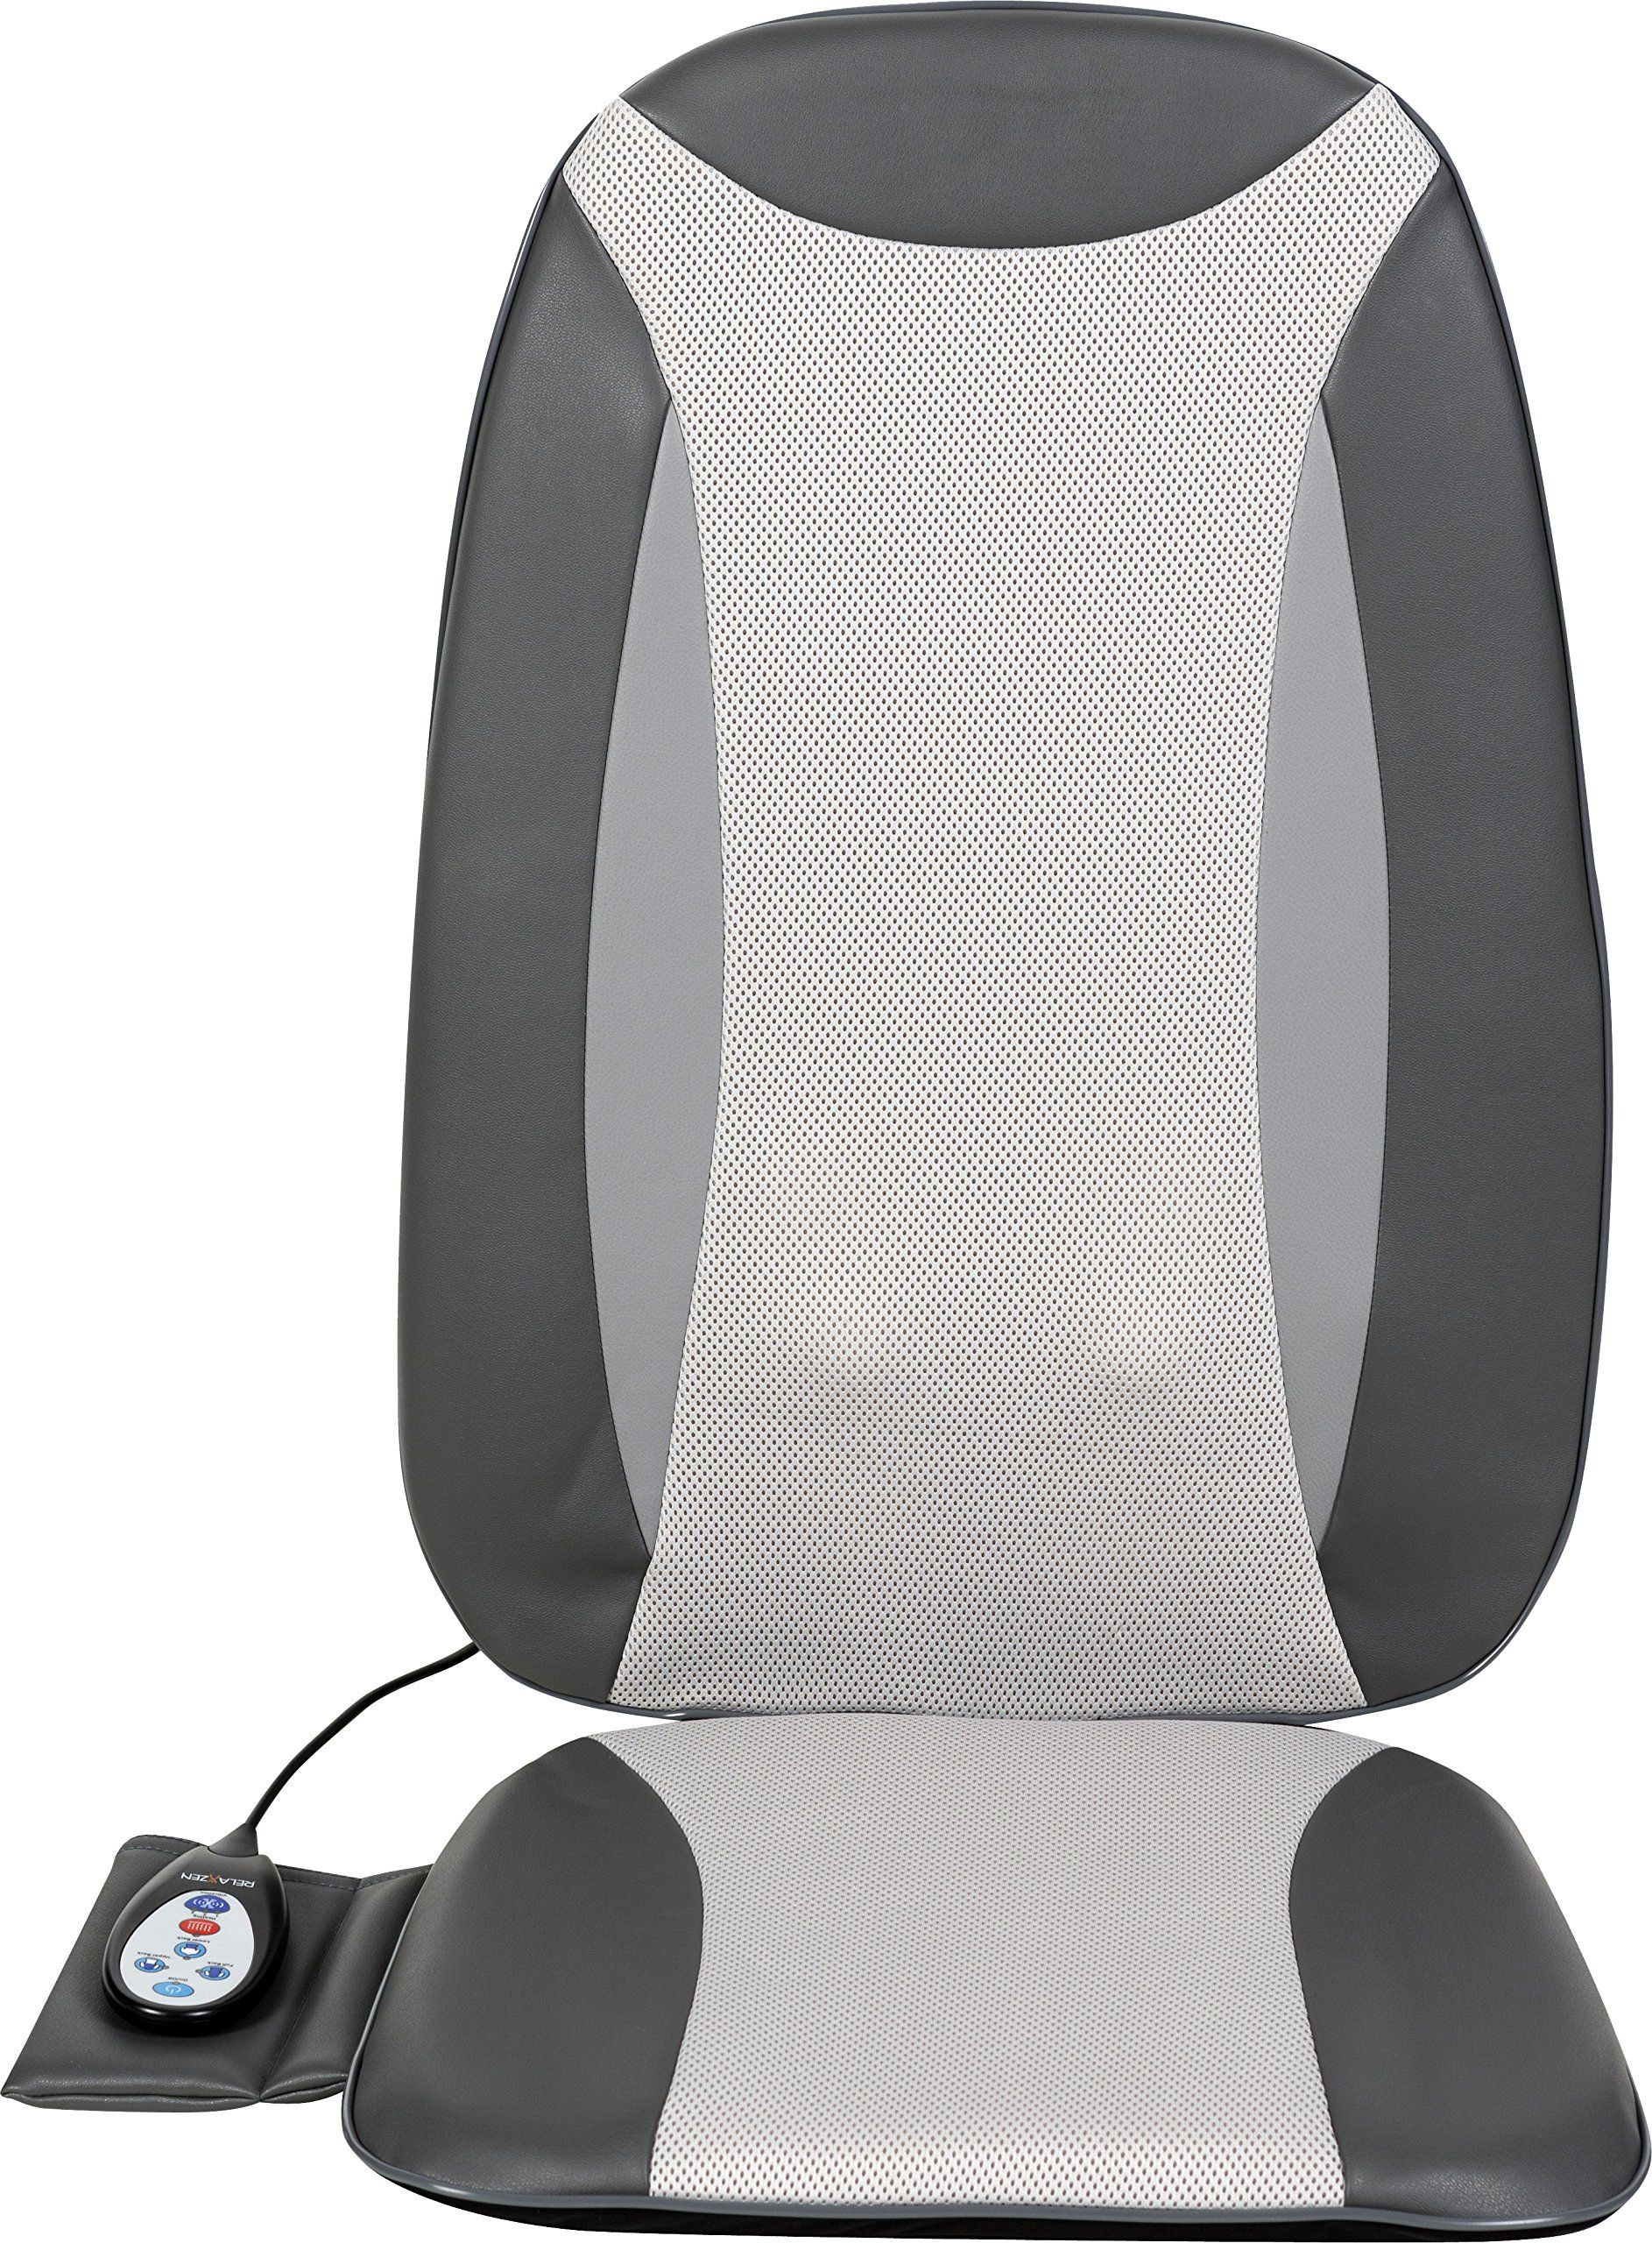 Relaxzen Full Back Shiatsu Mage Cushion With Heat Gray Details Can Be Found By Clicking On The Image This Is An Affiliate Link And I Receive A